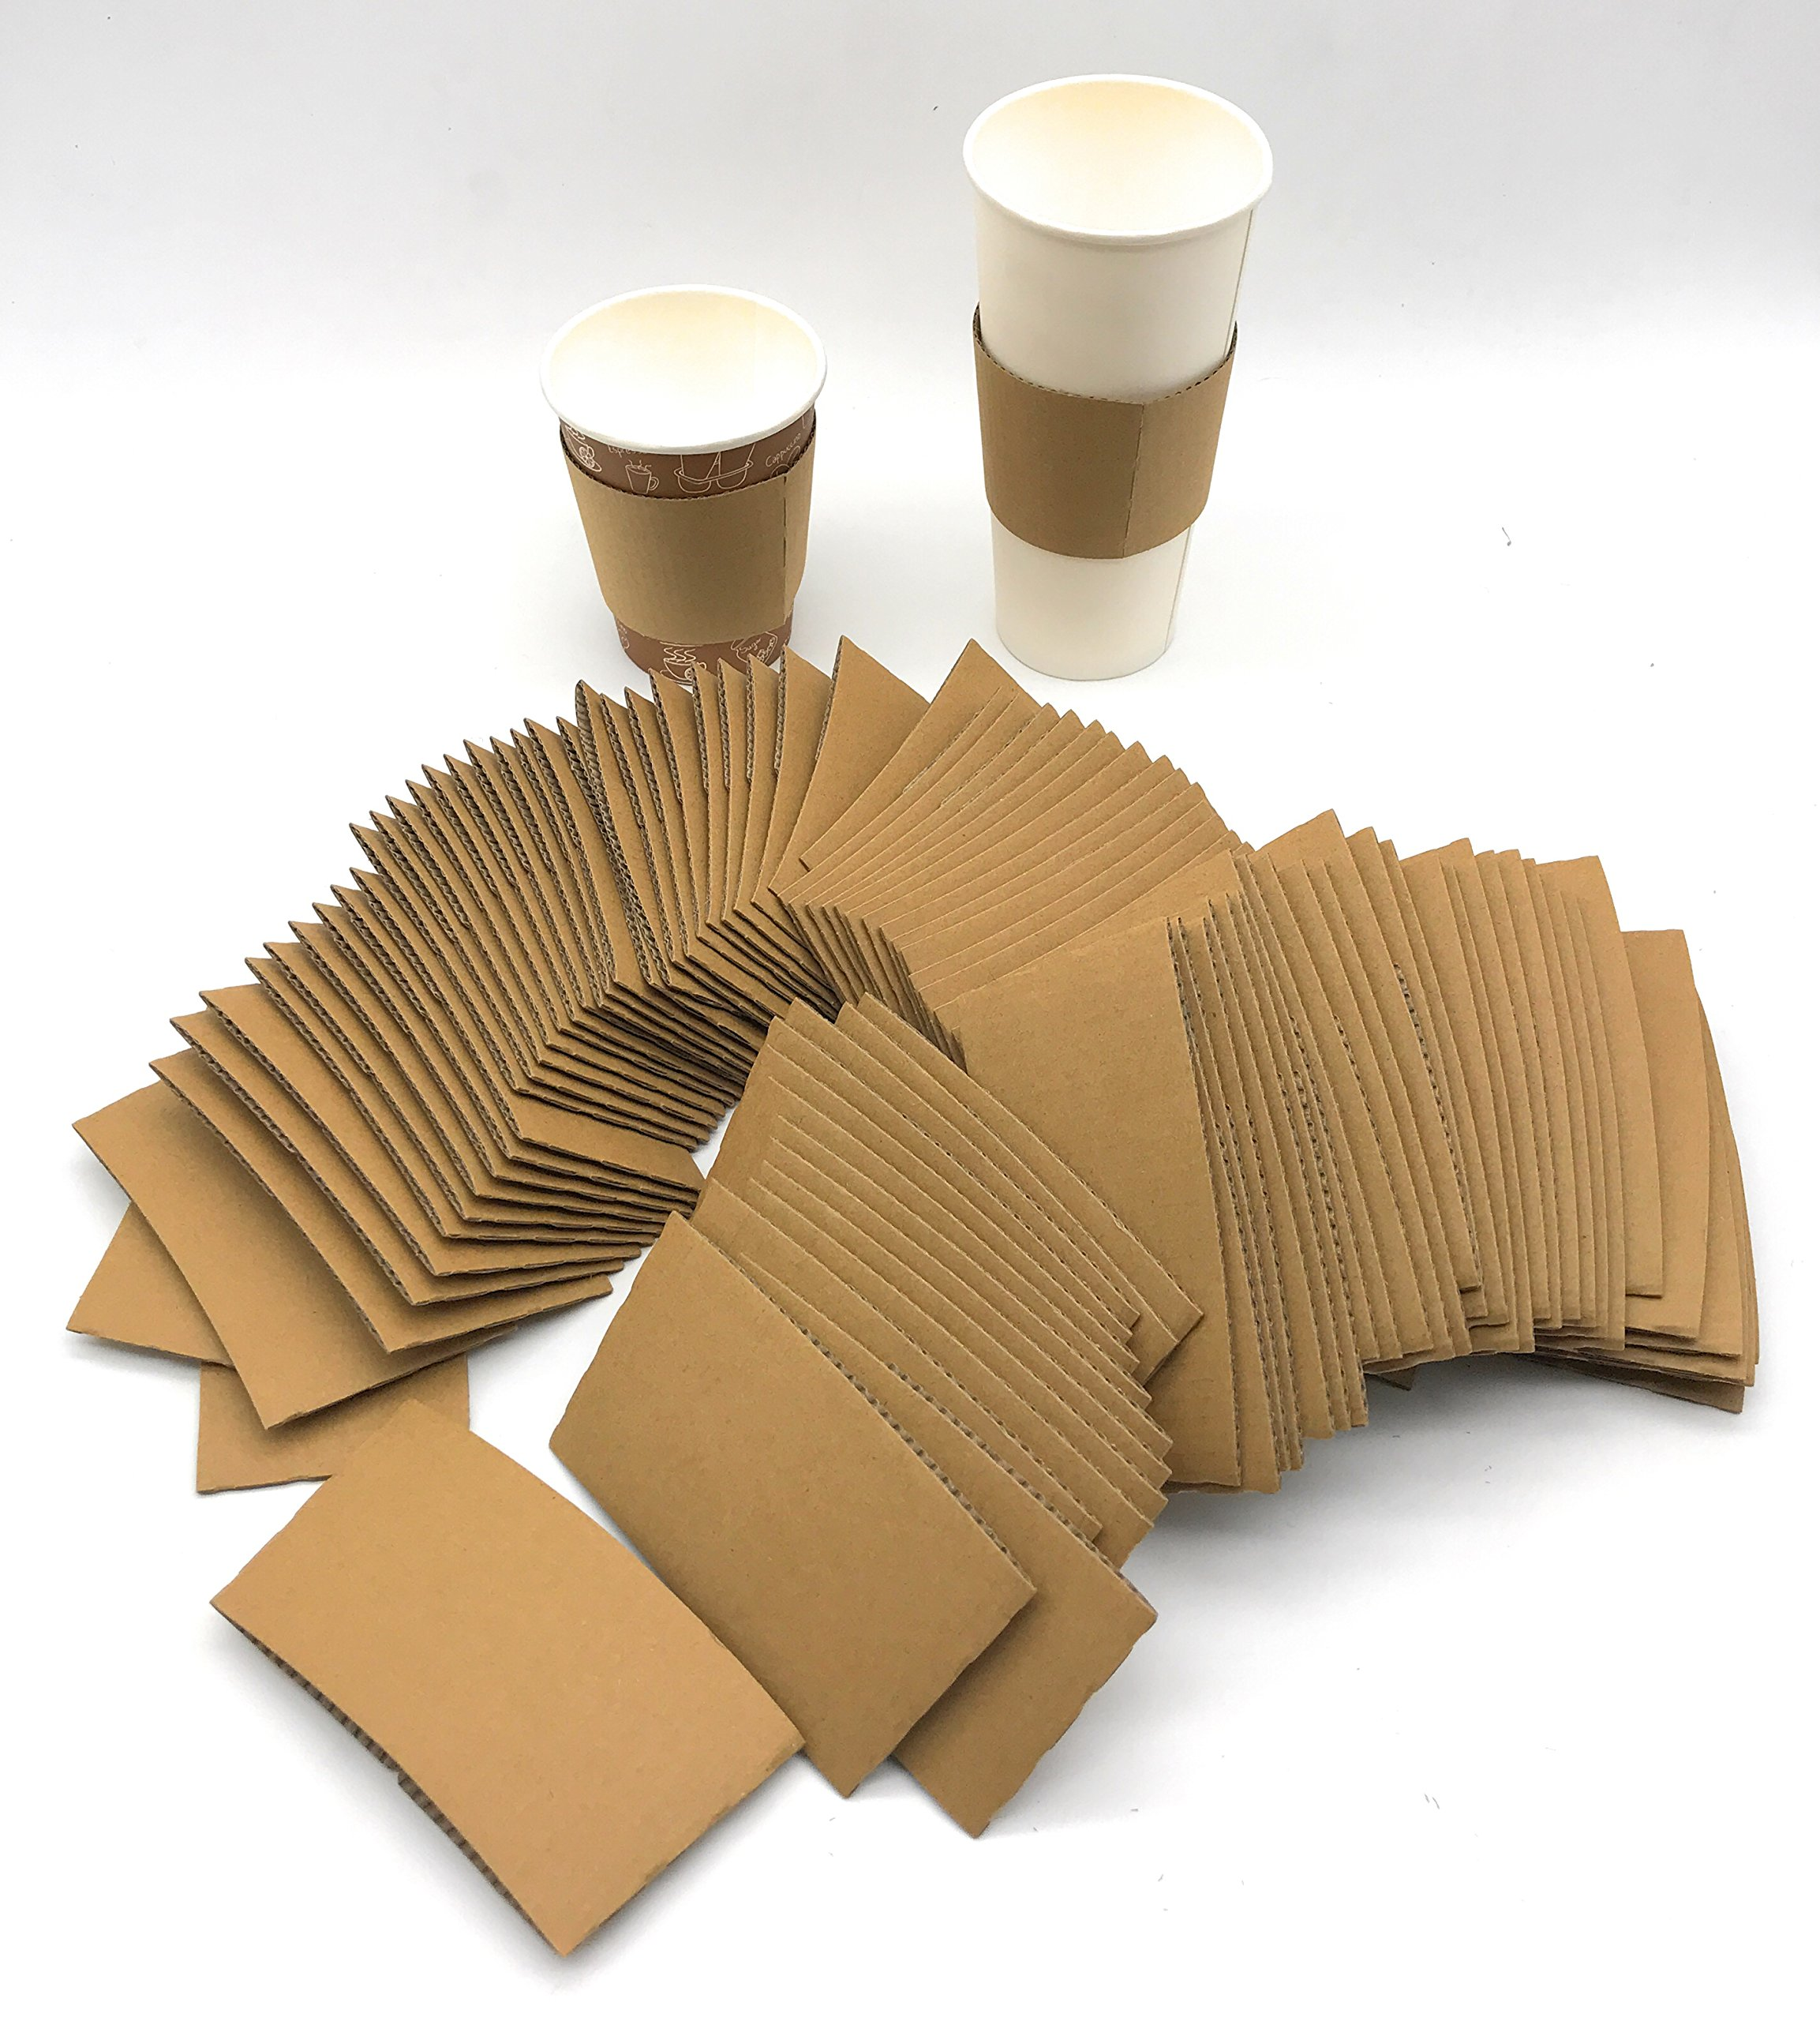 [5950 Count] Disposable Corrugated Hot Cup Sleeves Java Jackets - Natural compostable Kraft Color Cup Sleeve Protective Heat Insulation Paper Plastic Cups hot Coffee Tea Chocolate Drinks Insulated by Harvest Pack (Image #3)